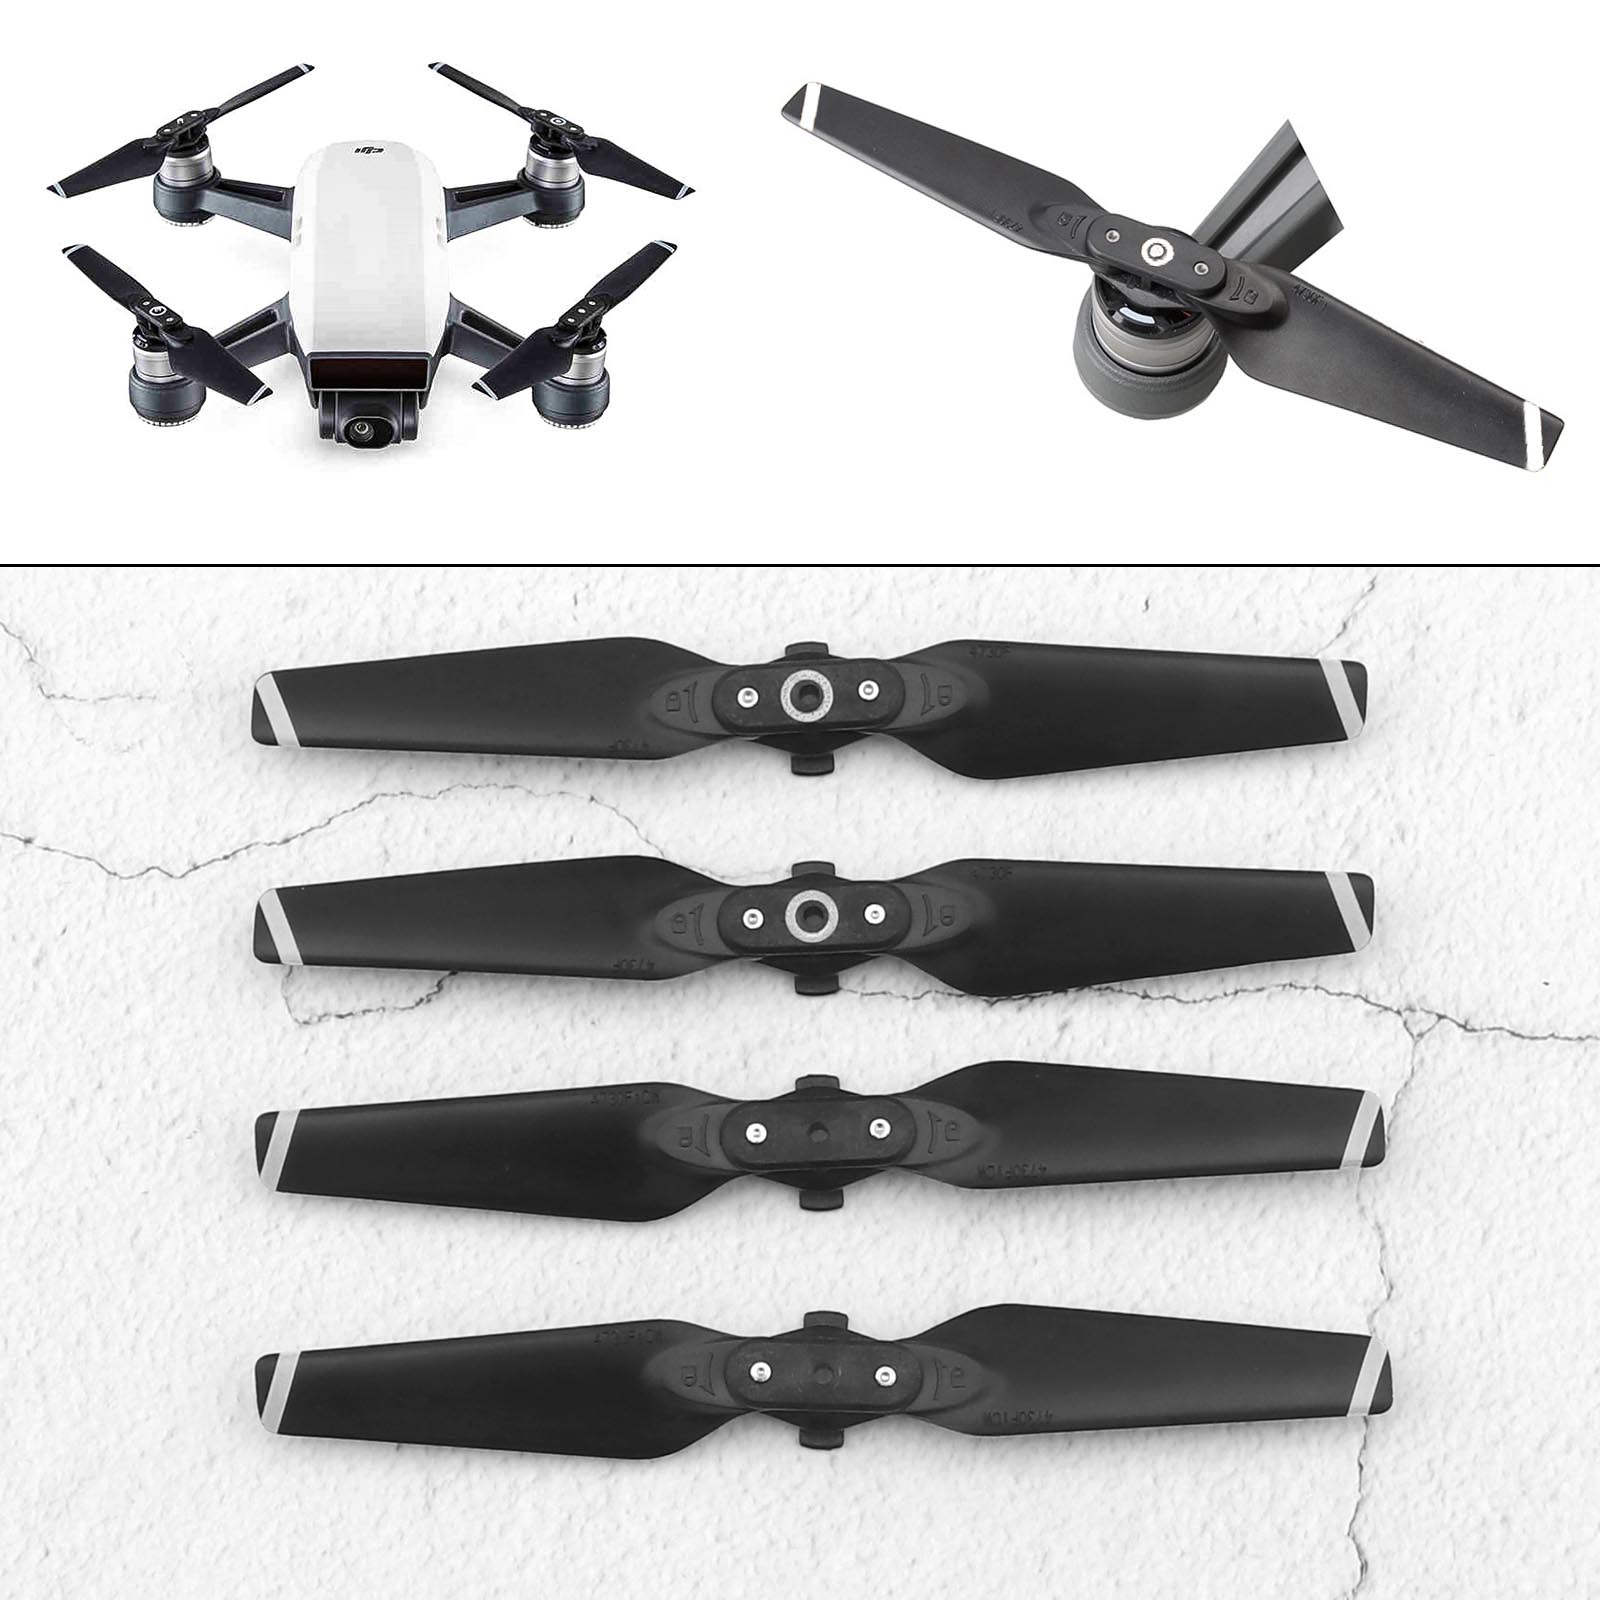 1 Pair 4730F Quick-release Folding Propeller CW//CCW Blade for DJI Spark Parts